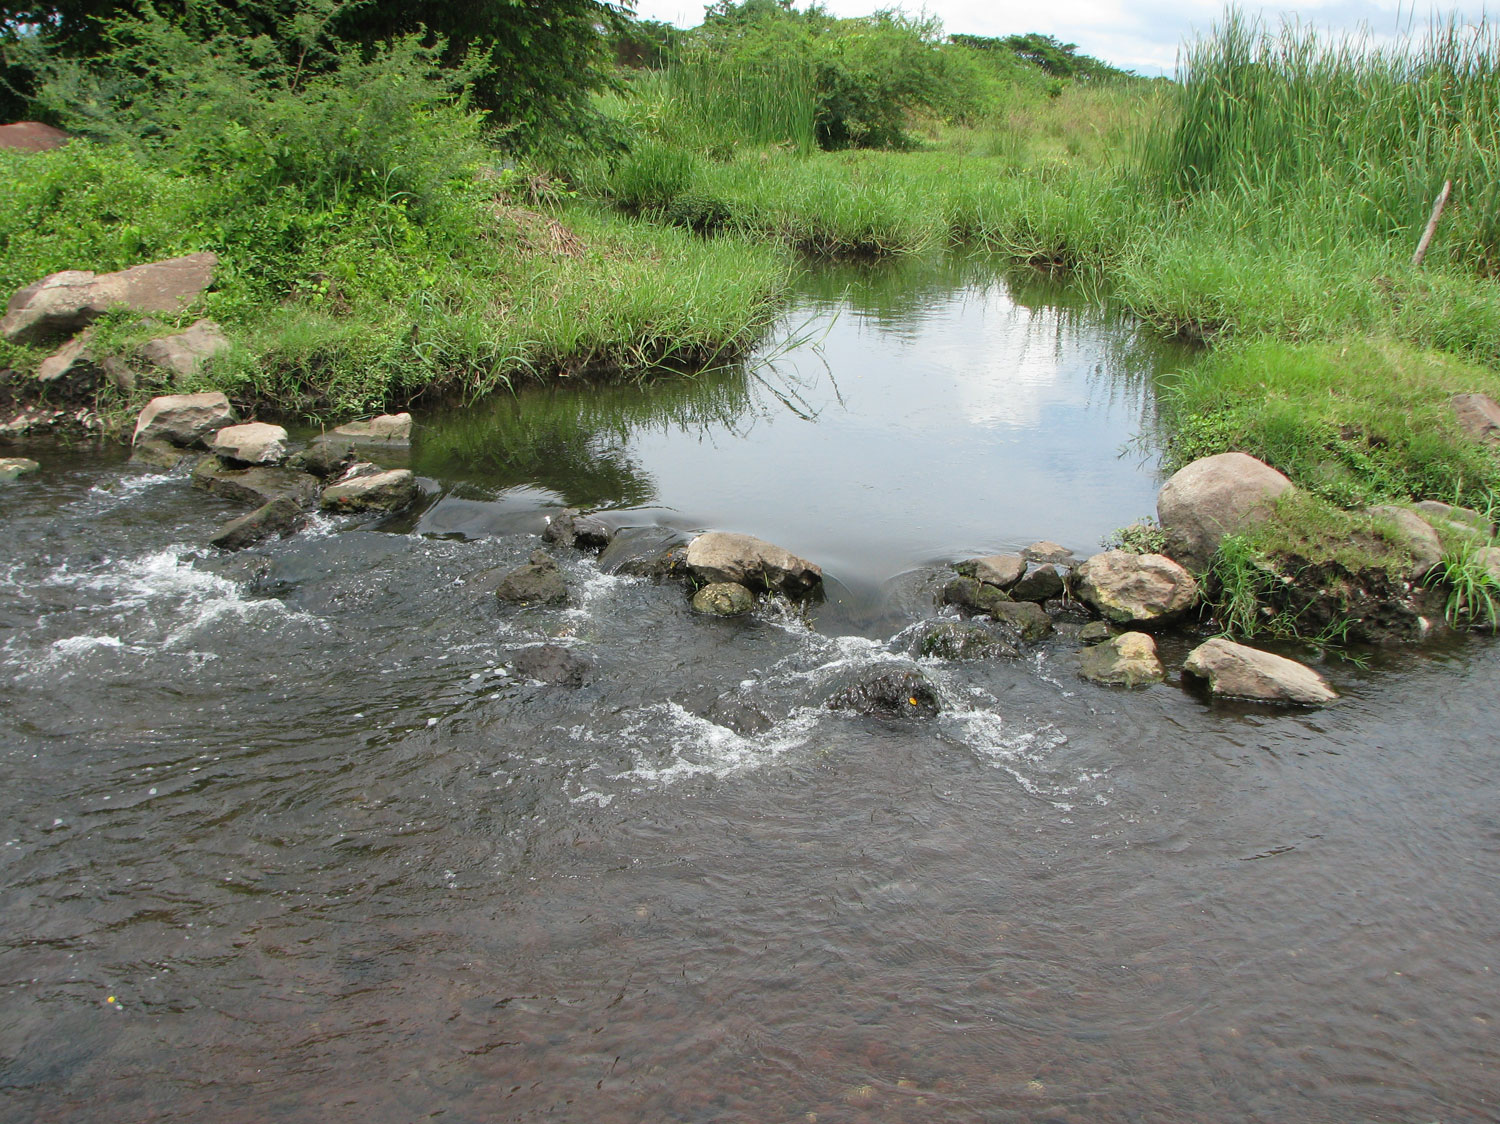 A spring-fed stream contaminated with arsenic